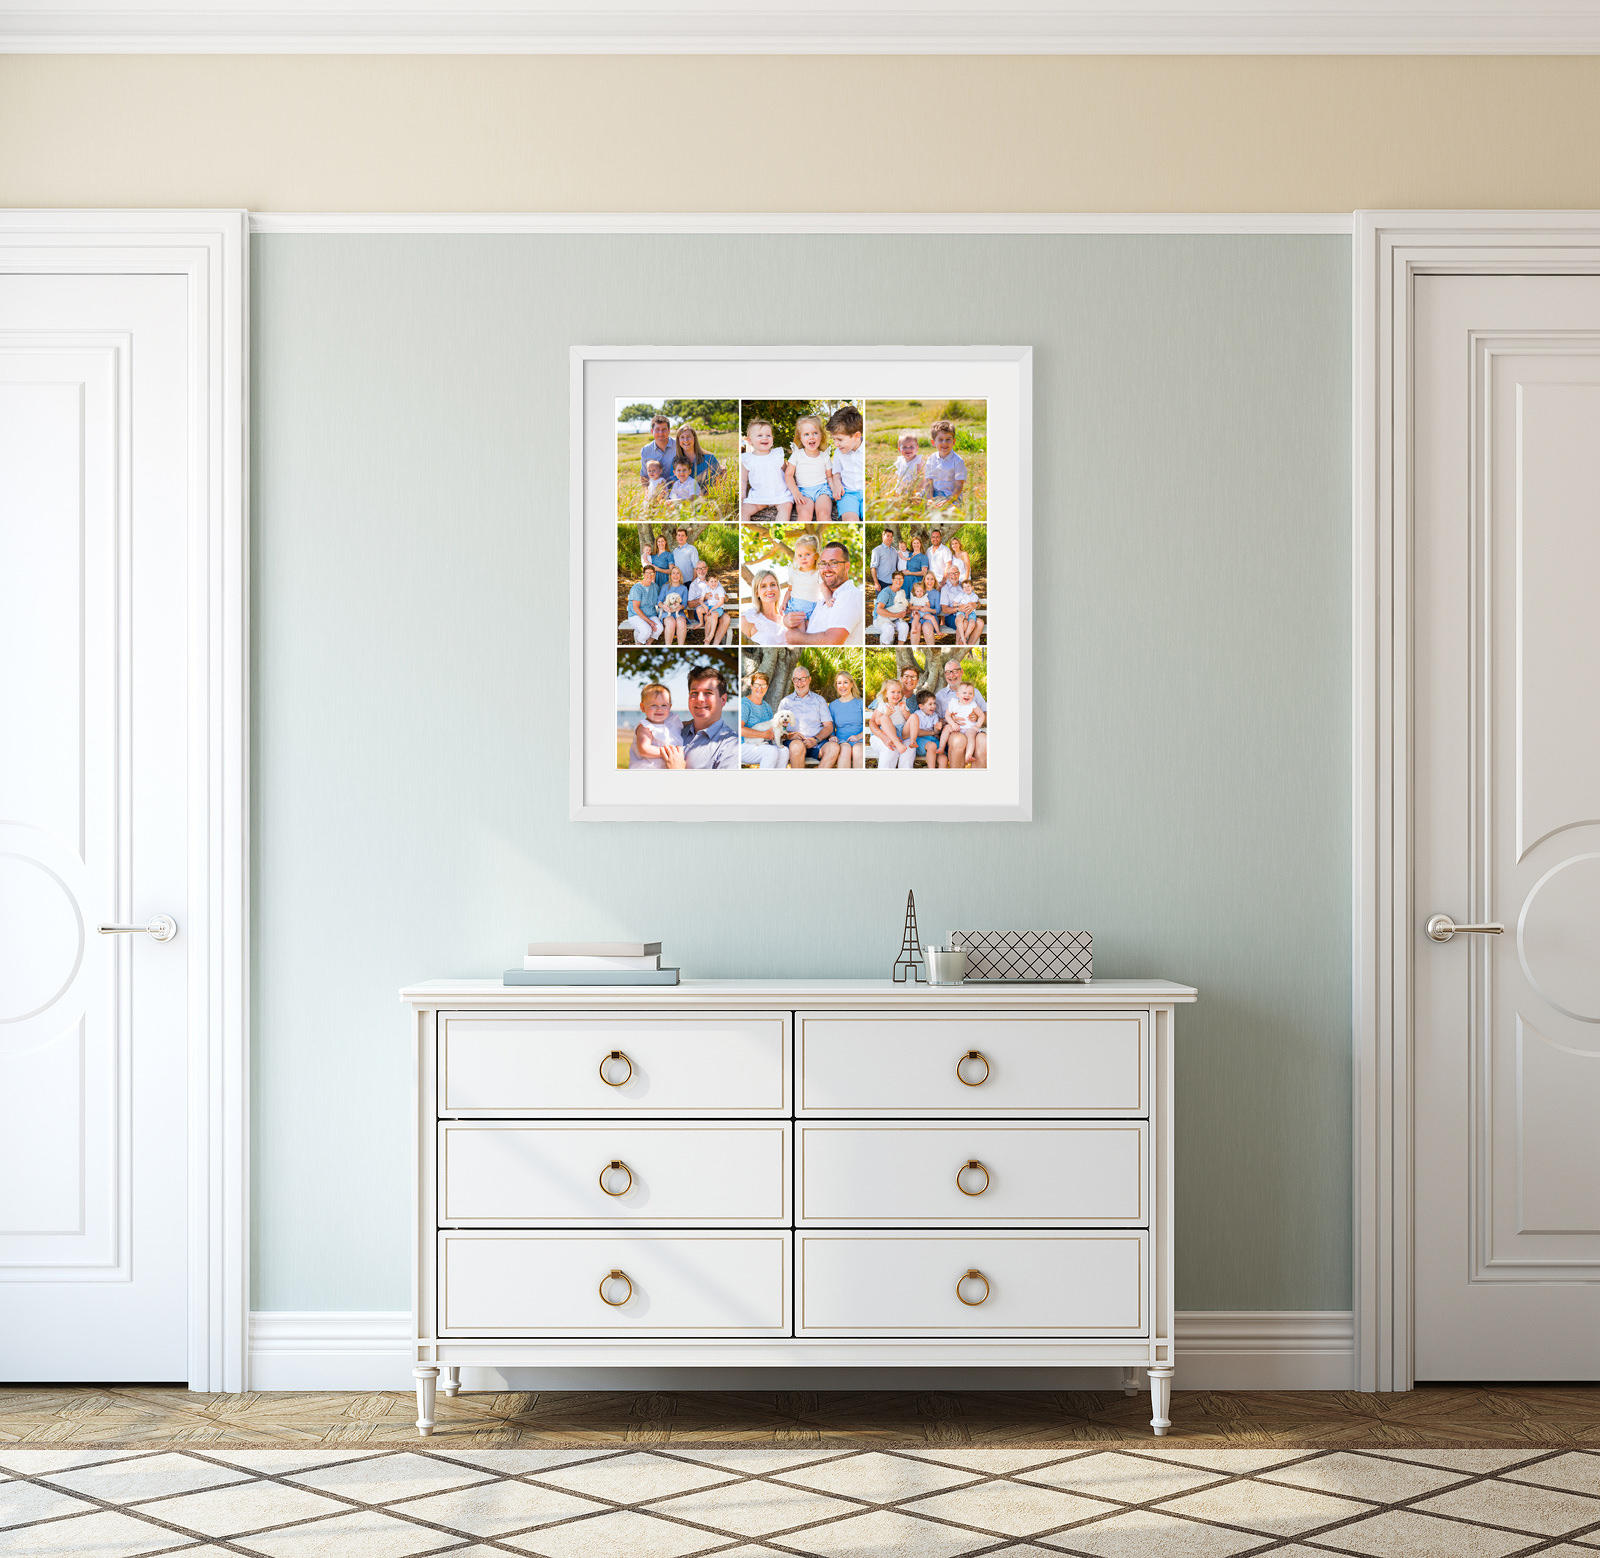 Framed wall art with 9 images hanging on wall above dresser in bedroom